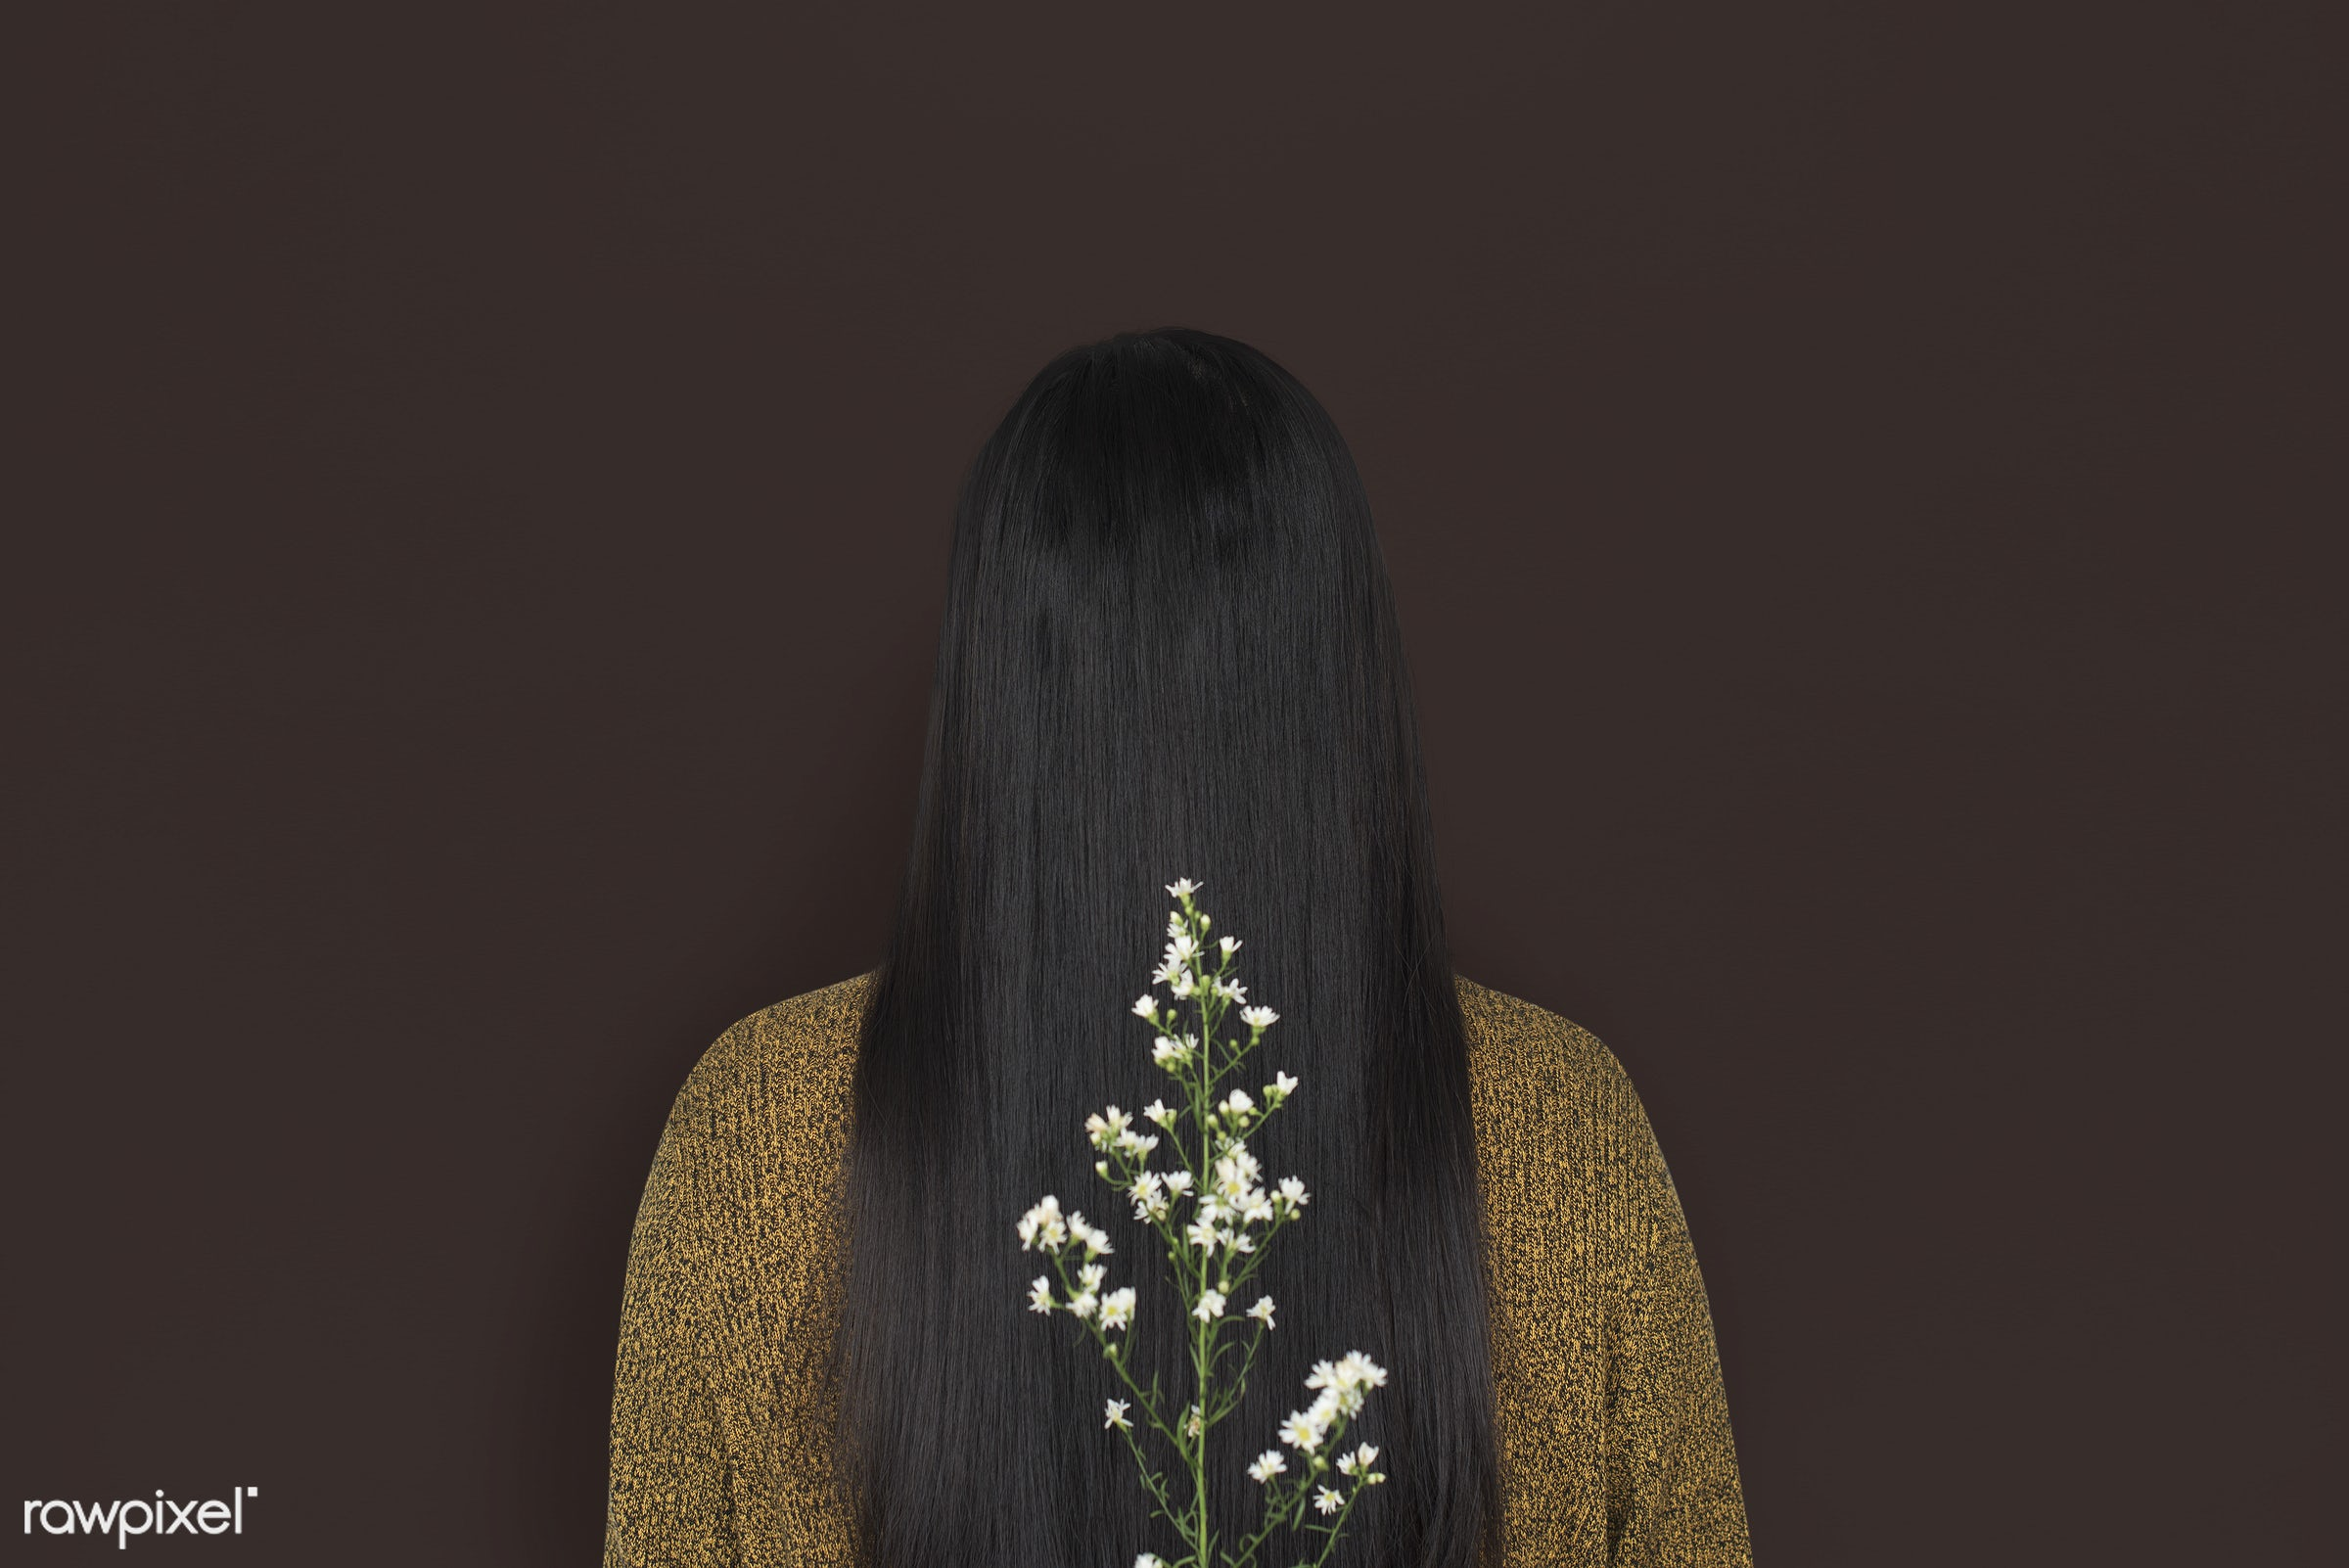 studio, person, people, girl, woman, casual, flower, rear view, isolated, flora, long hair, adult, portrait, charming,...